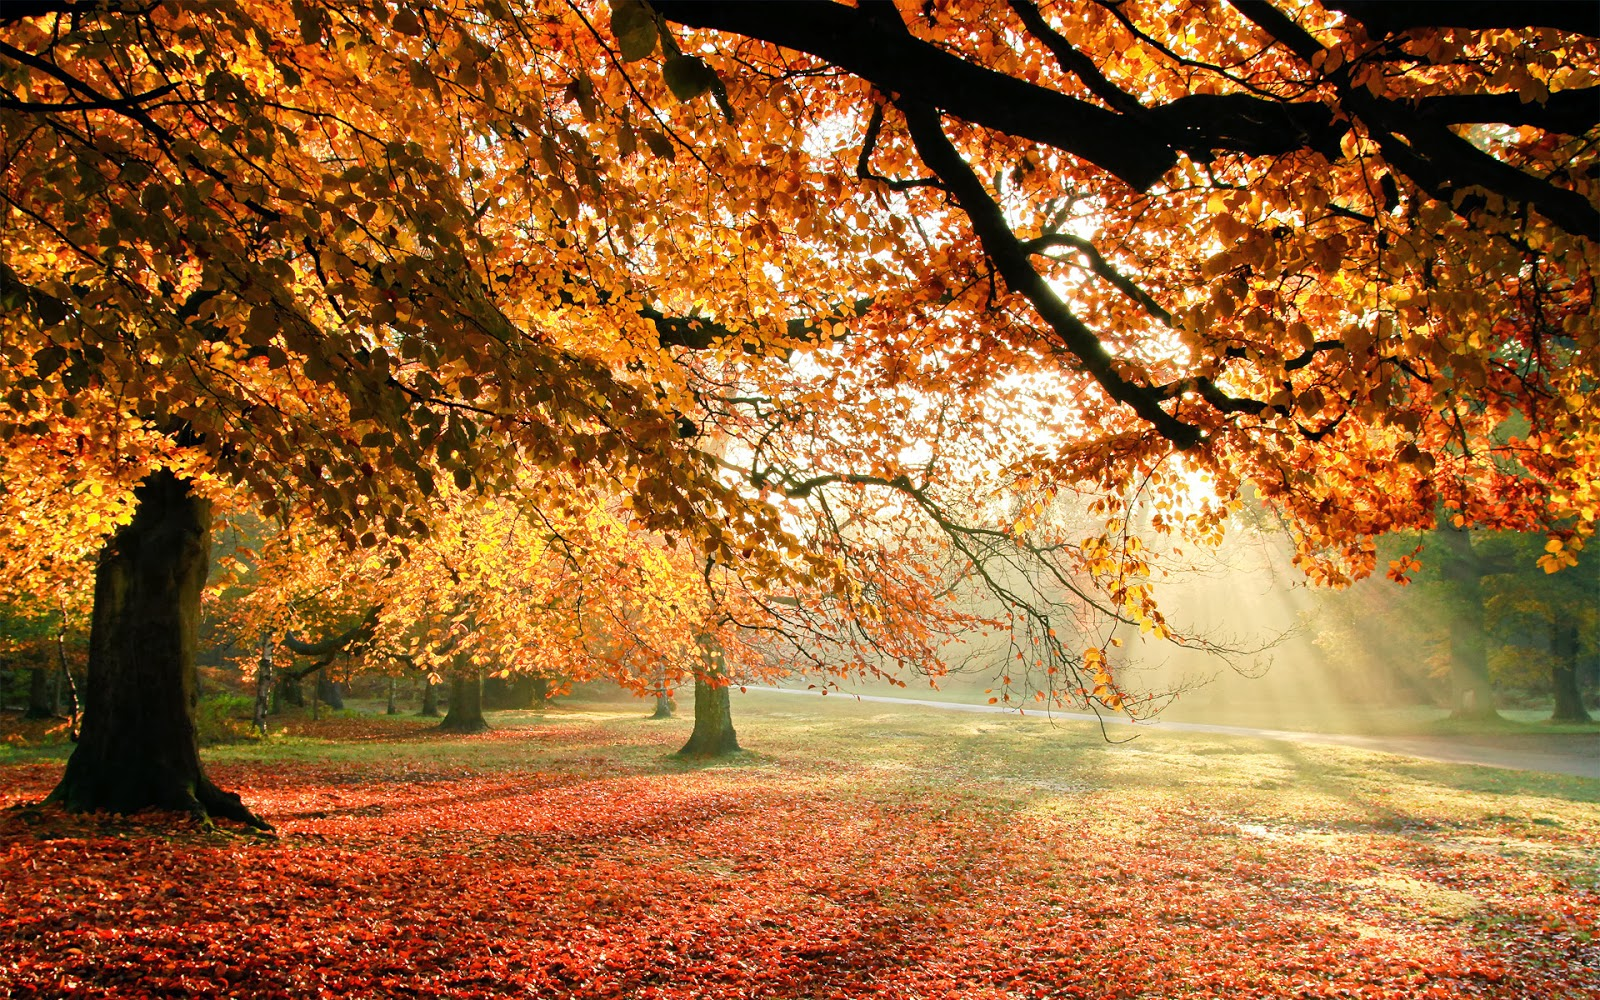 http://funnywallpapers4all.blogspot.com/2014/02/autumn-trees-sun-light-funny-wallpapers.html